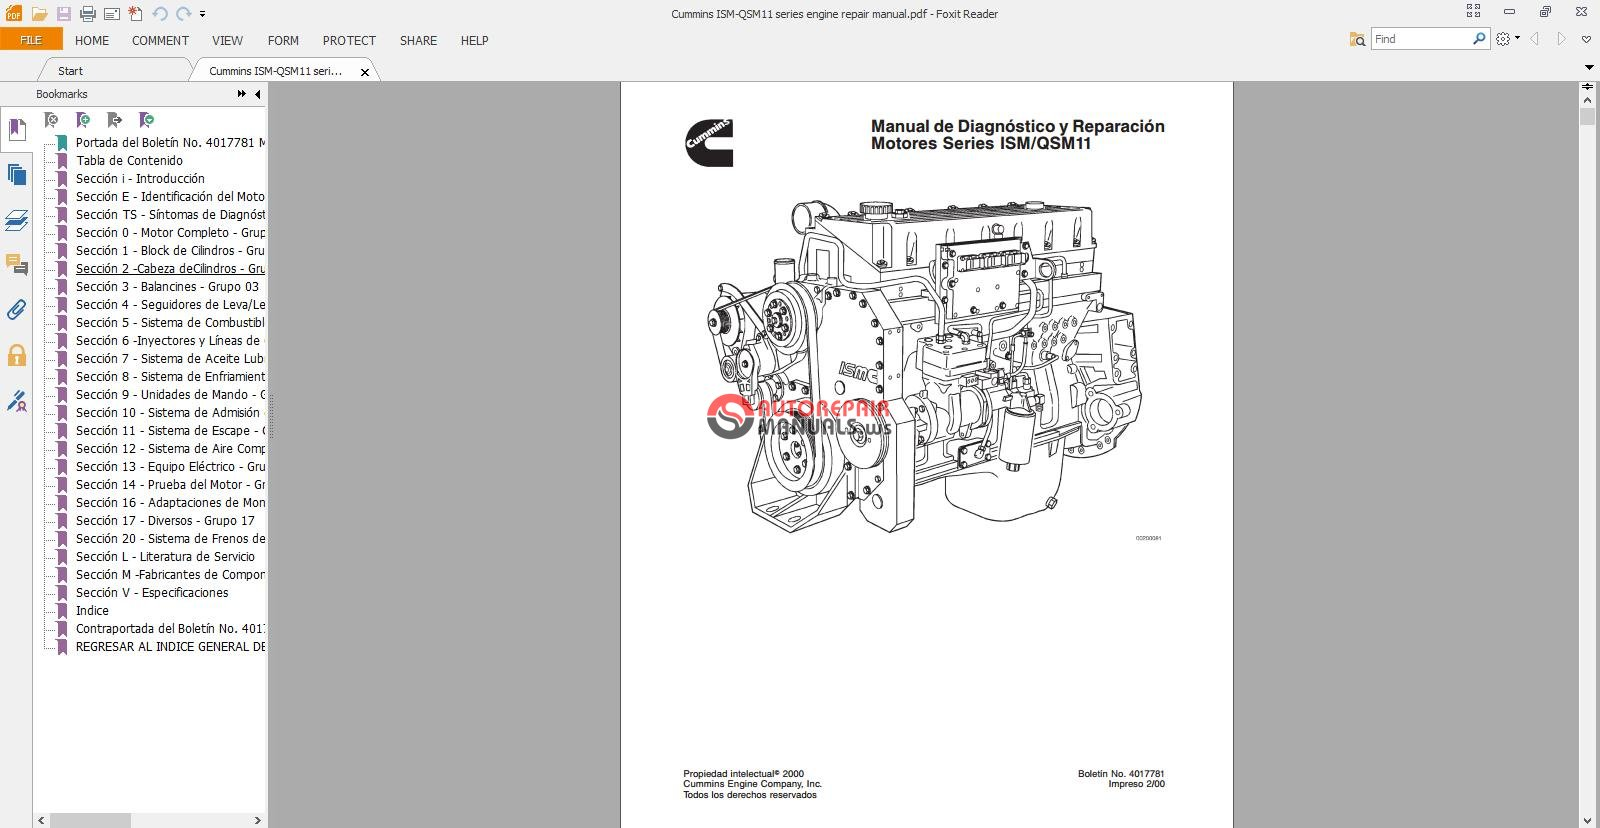 Download Cummins Ism-qsm11 Series Engine Repair Manual